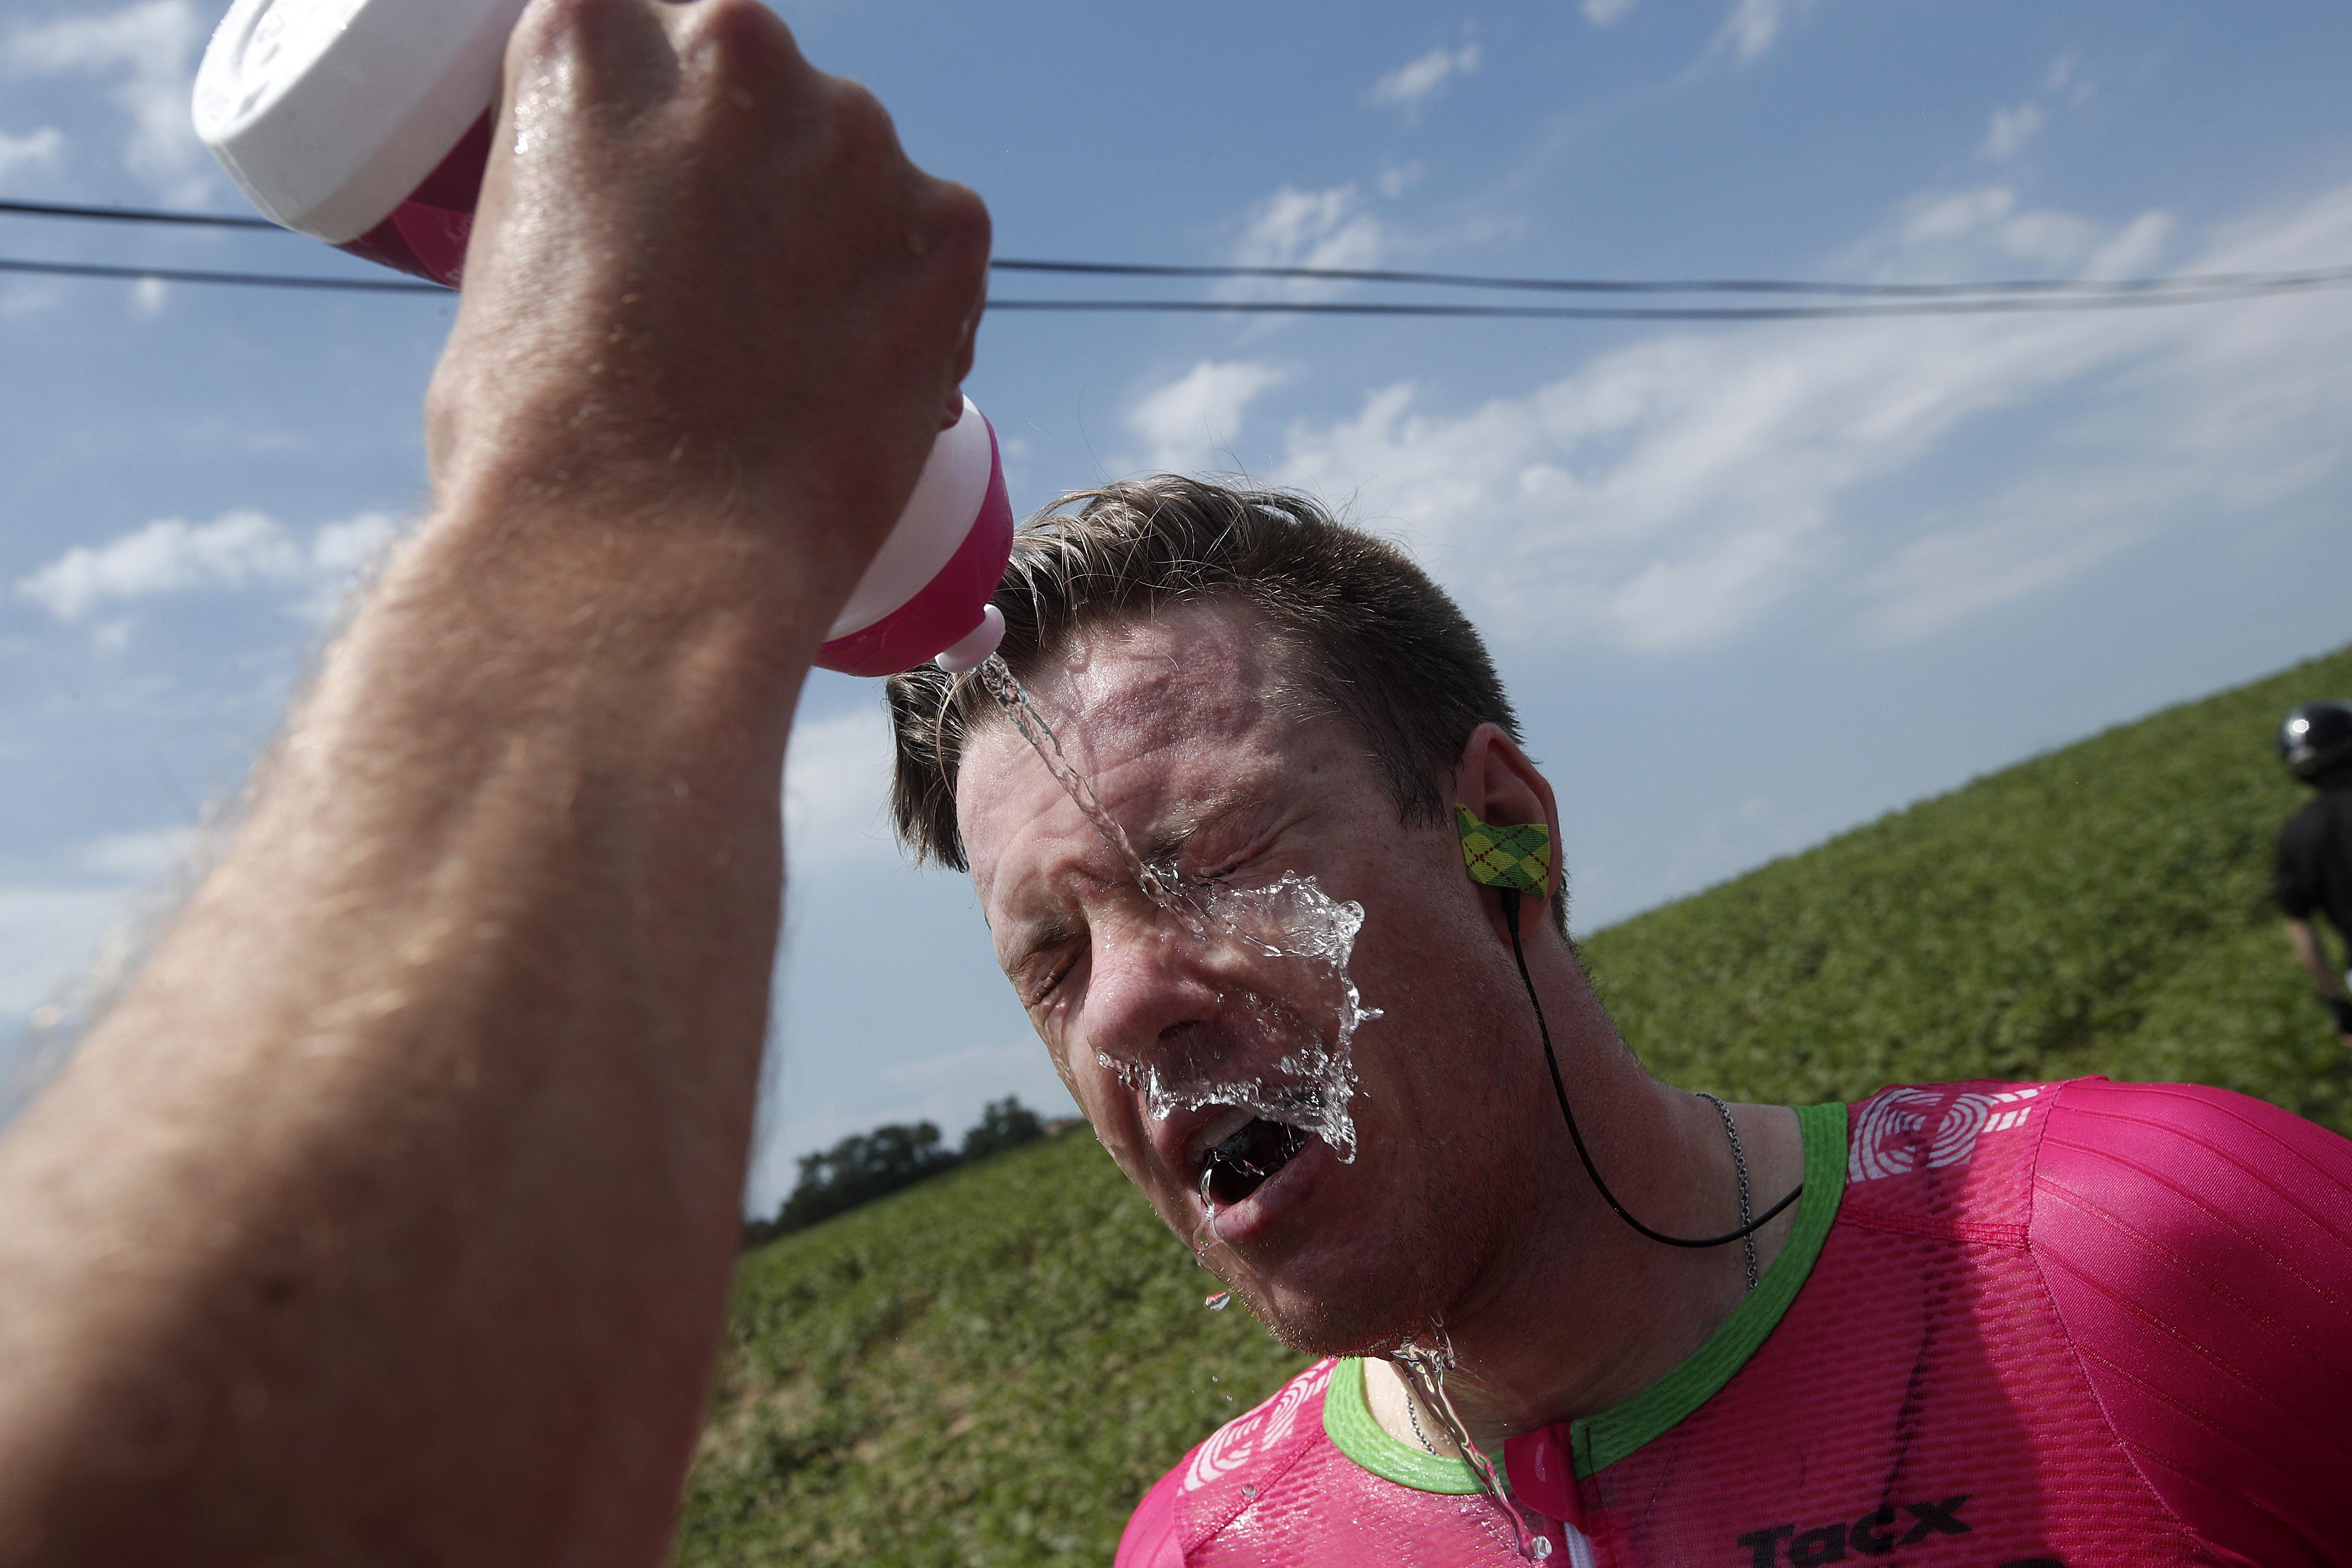 Simon Clarke gets a team-mate to spray his face with water